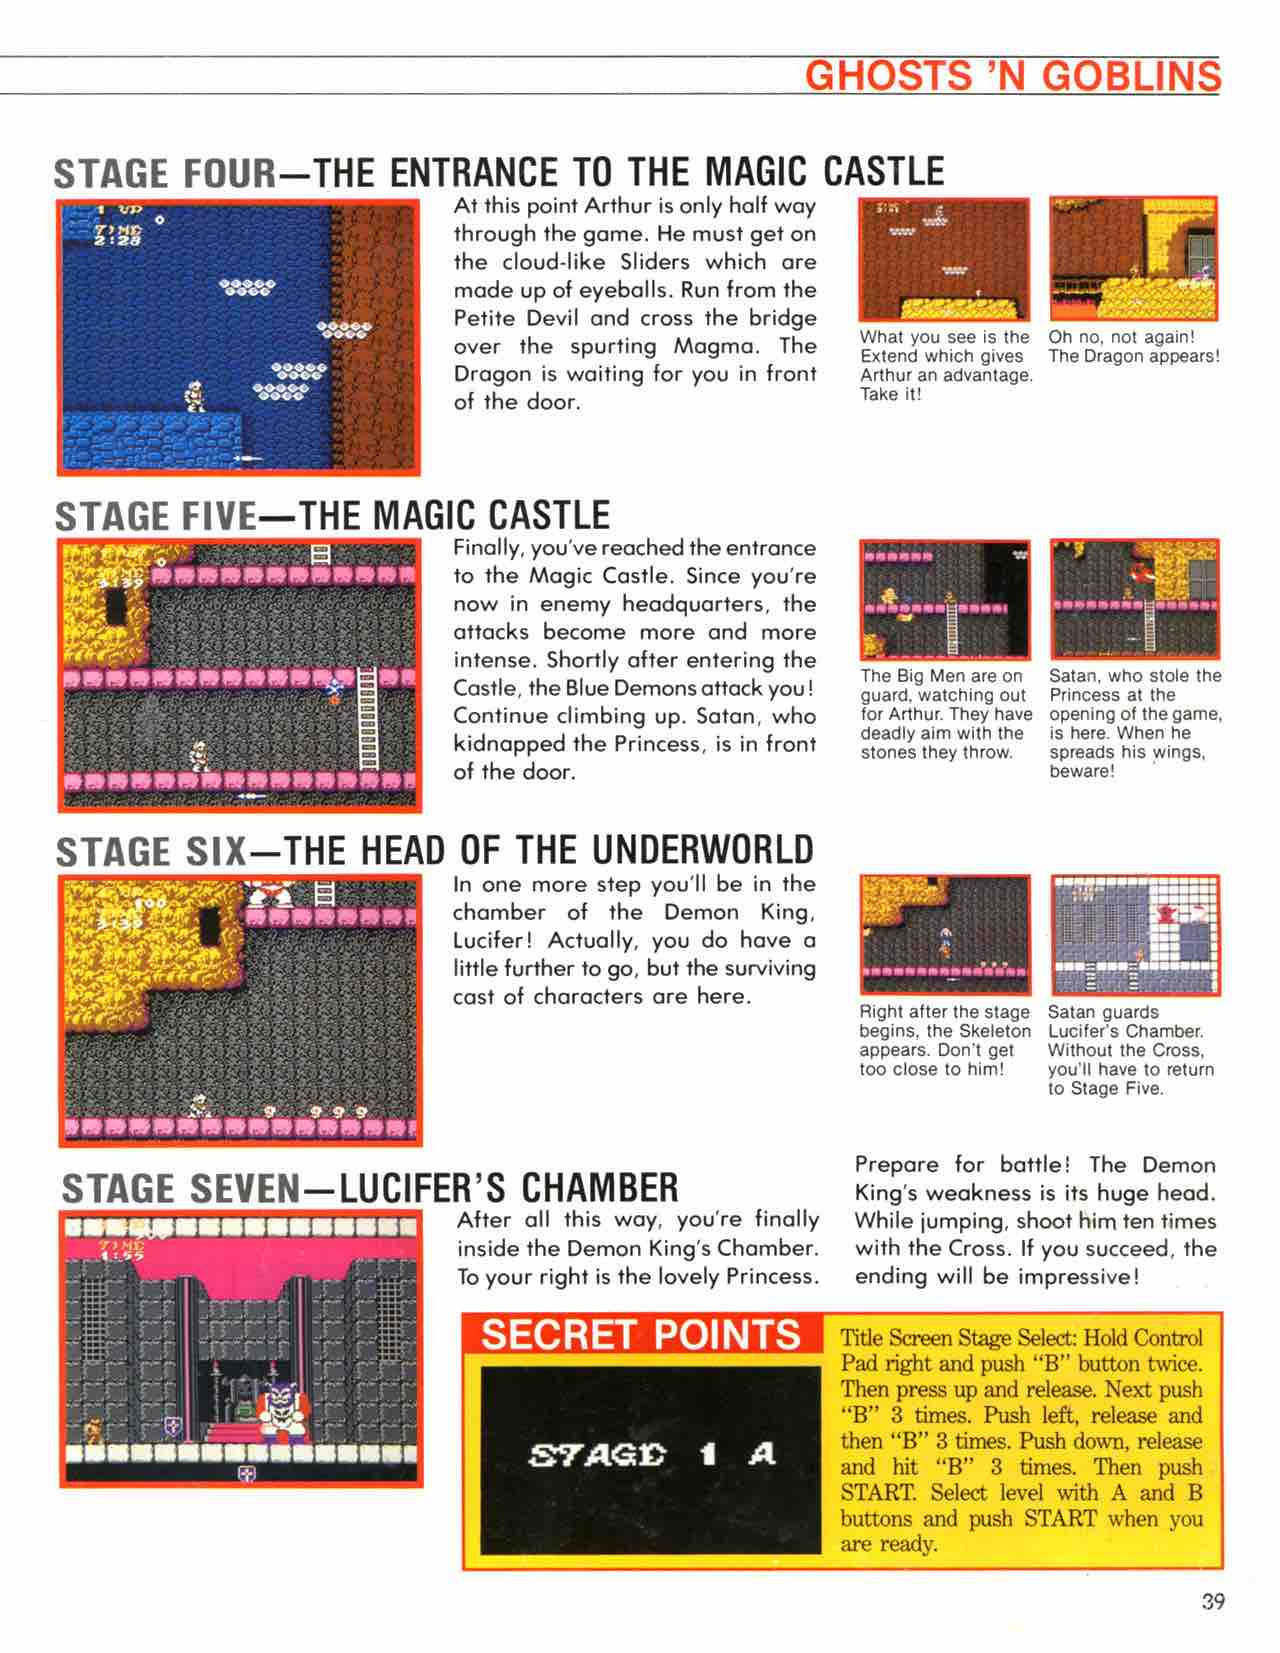 Official Nintendo Player's Guide Pg 39